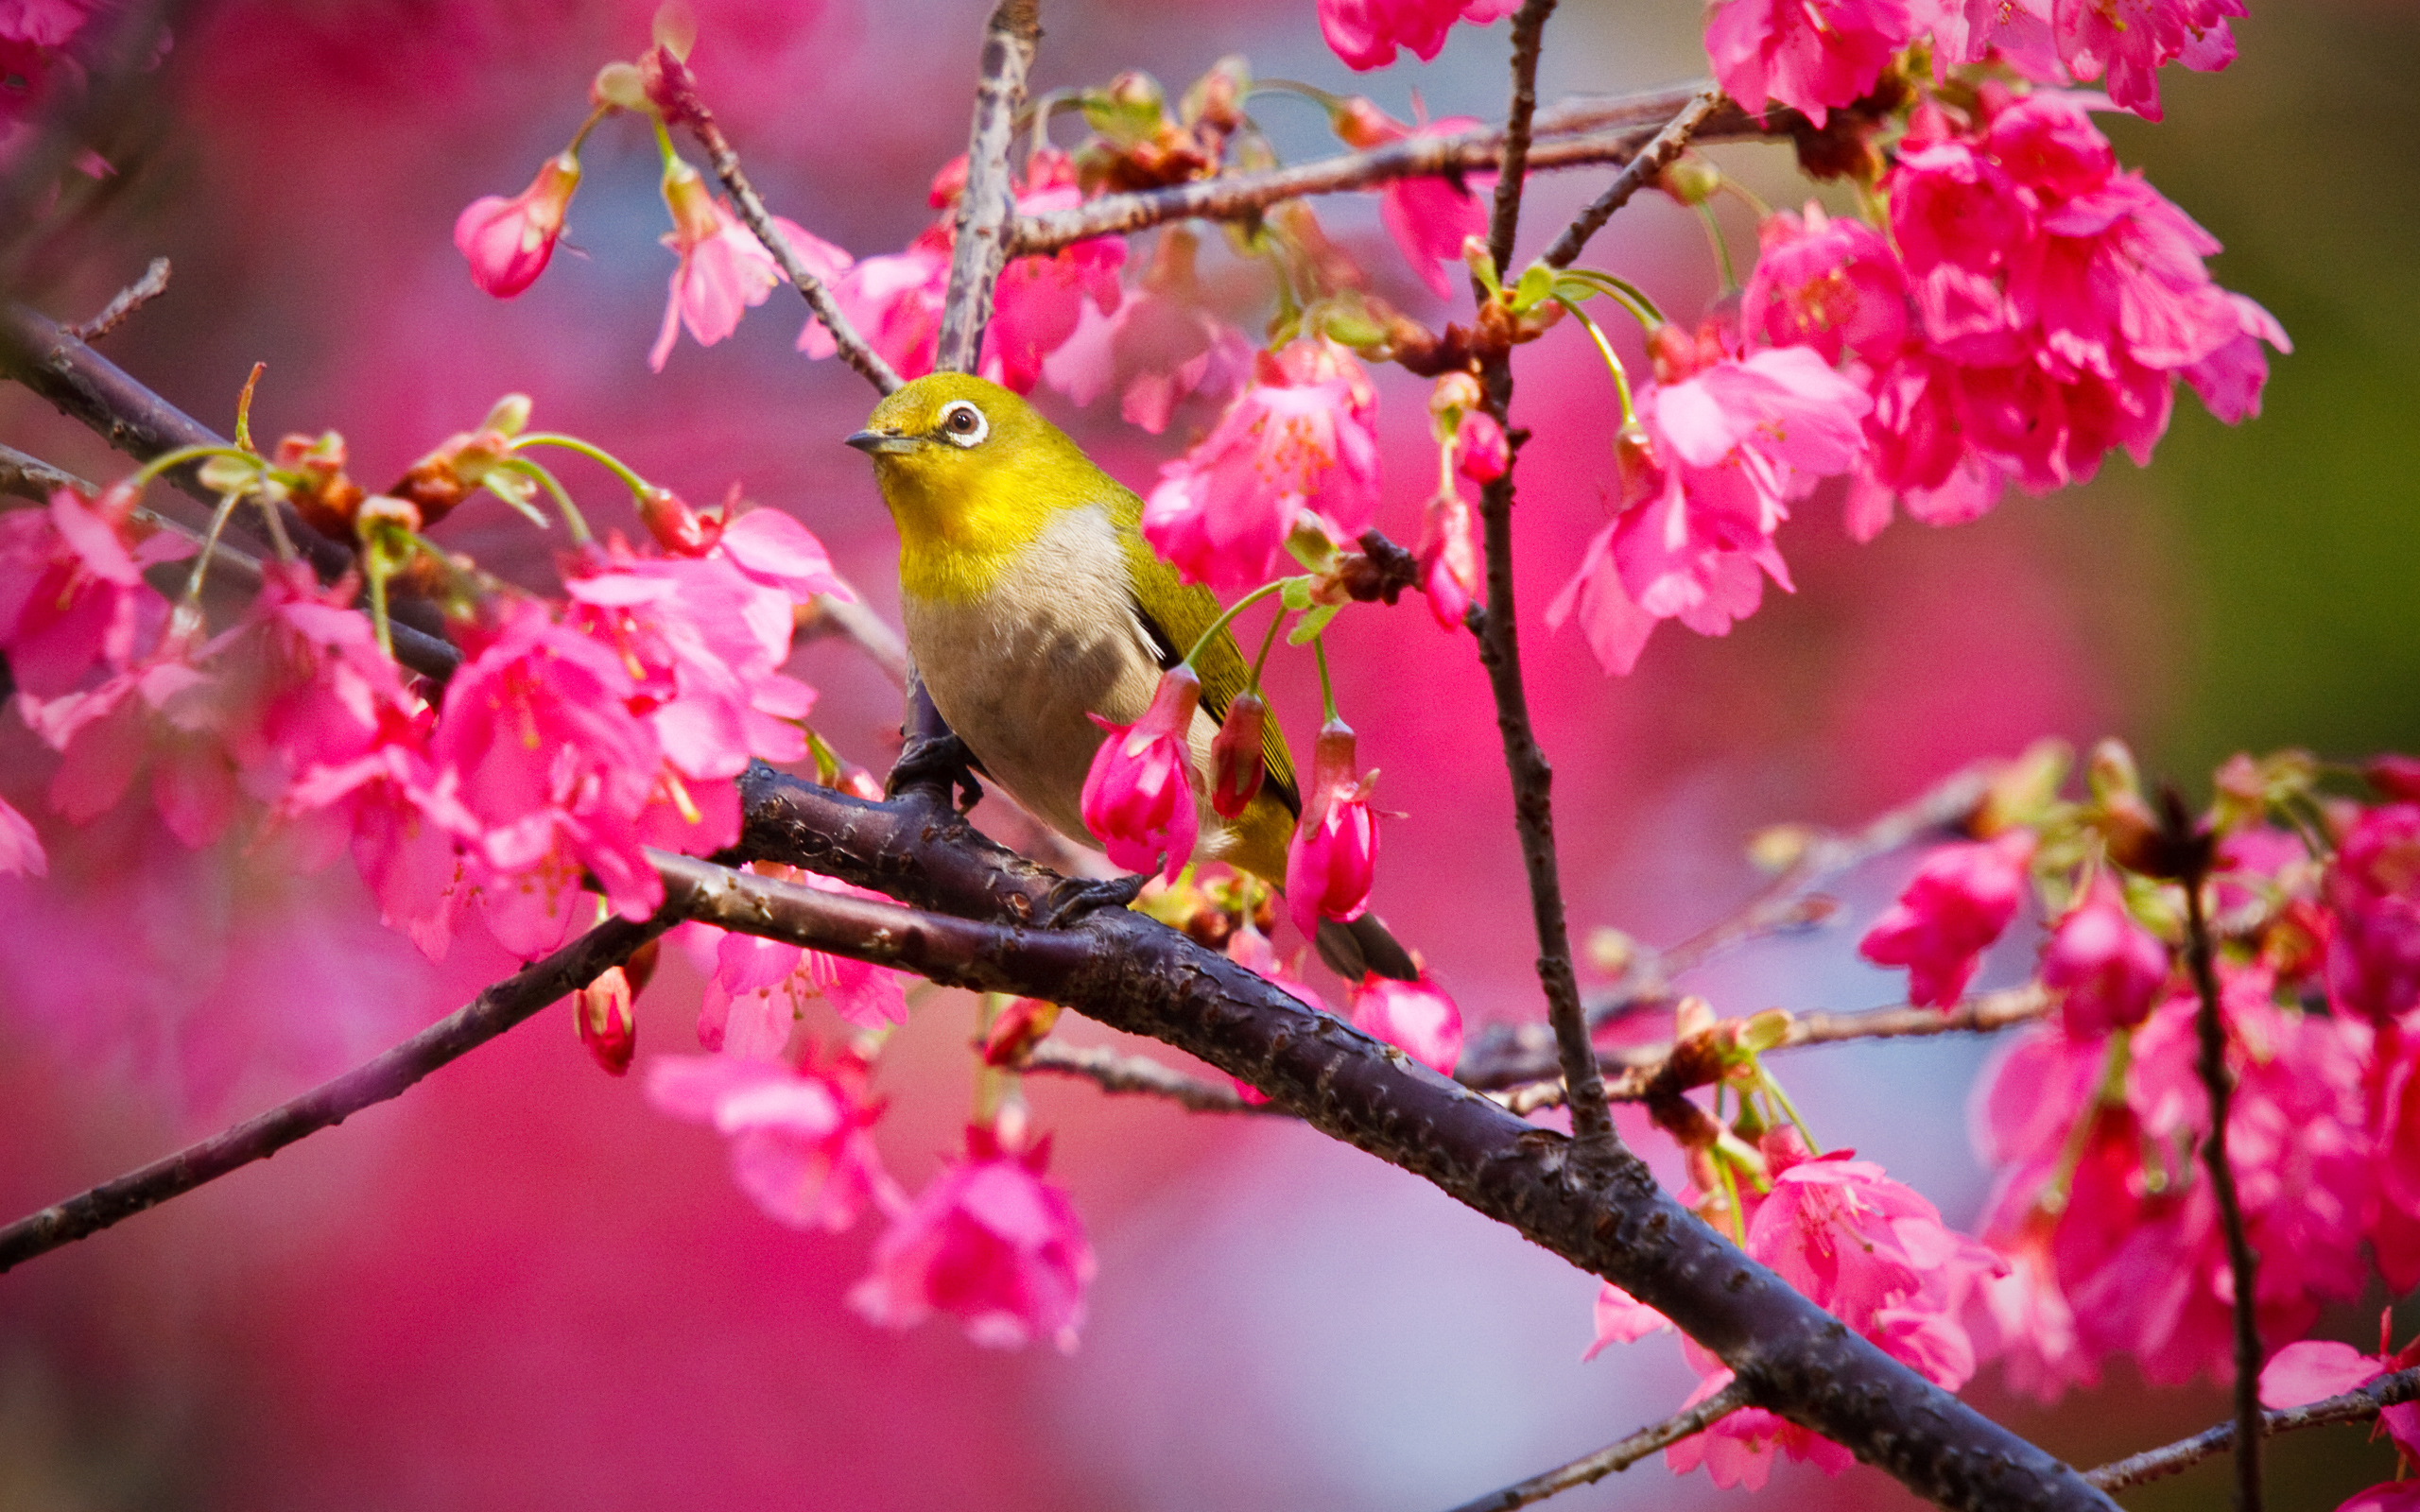 yellow bird on the branch of rose color cherry tree click to download 2560x1600